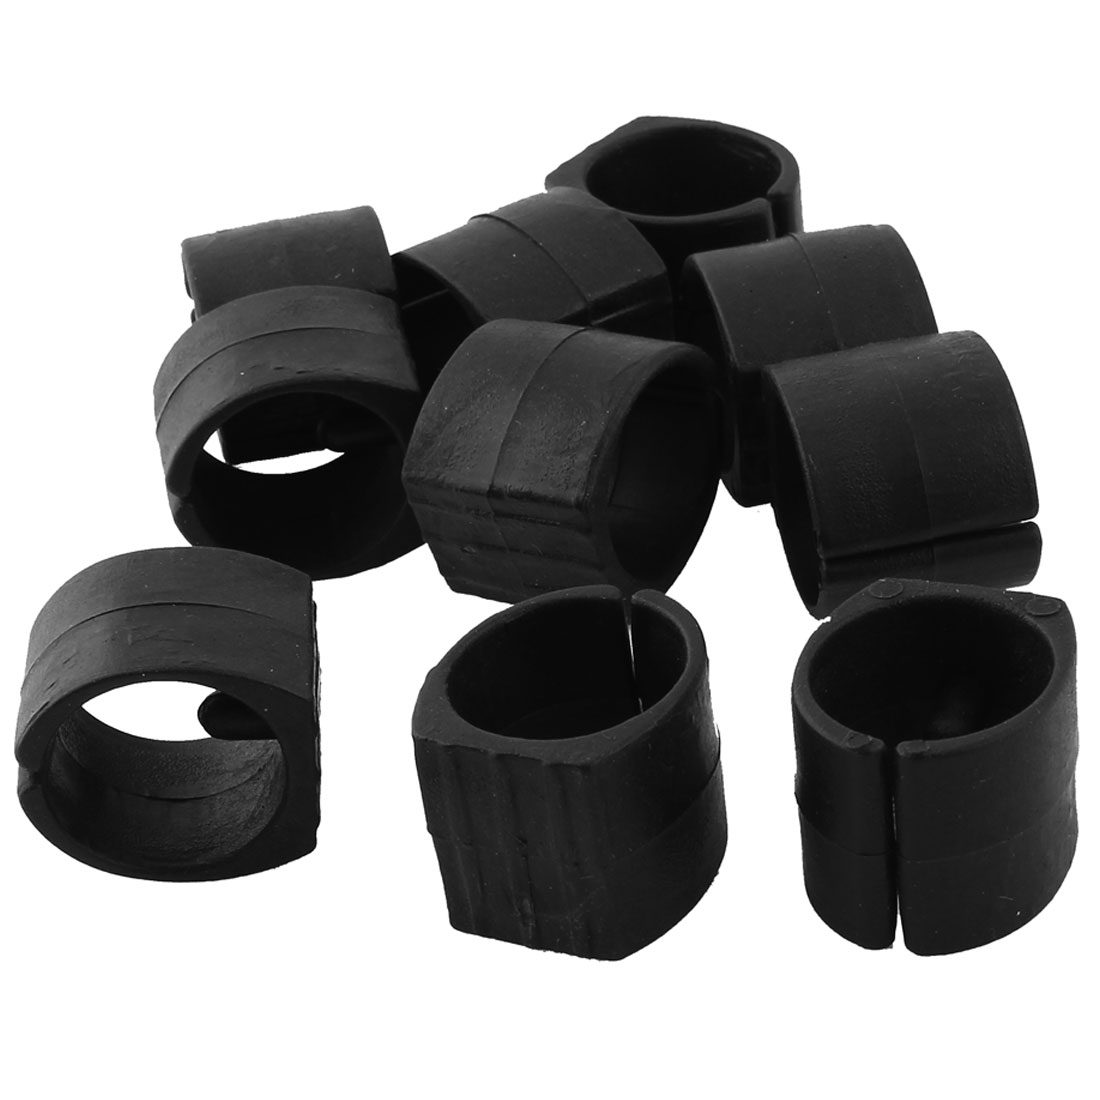 Home Furniture Chair Pipe Plastic Foot Clamp Pads U-Shape Caps Black 10pcs